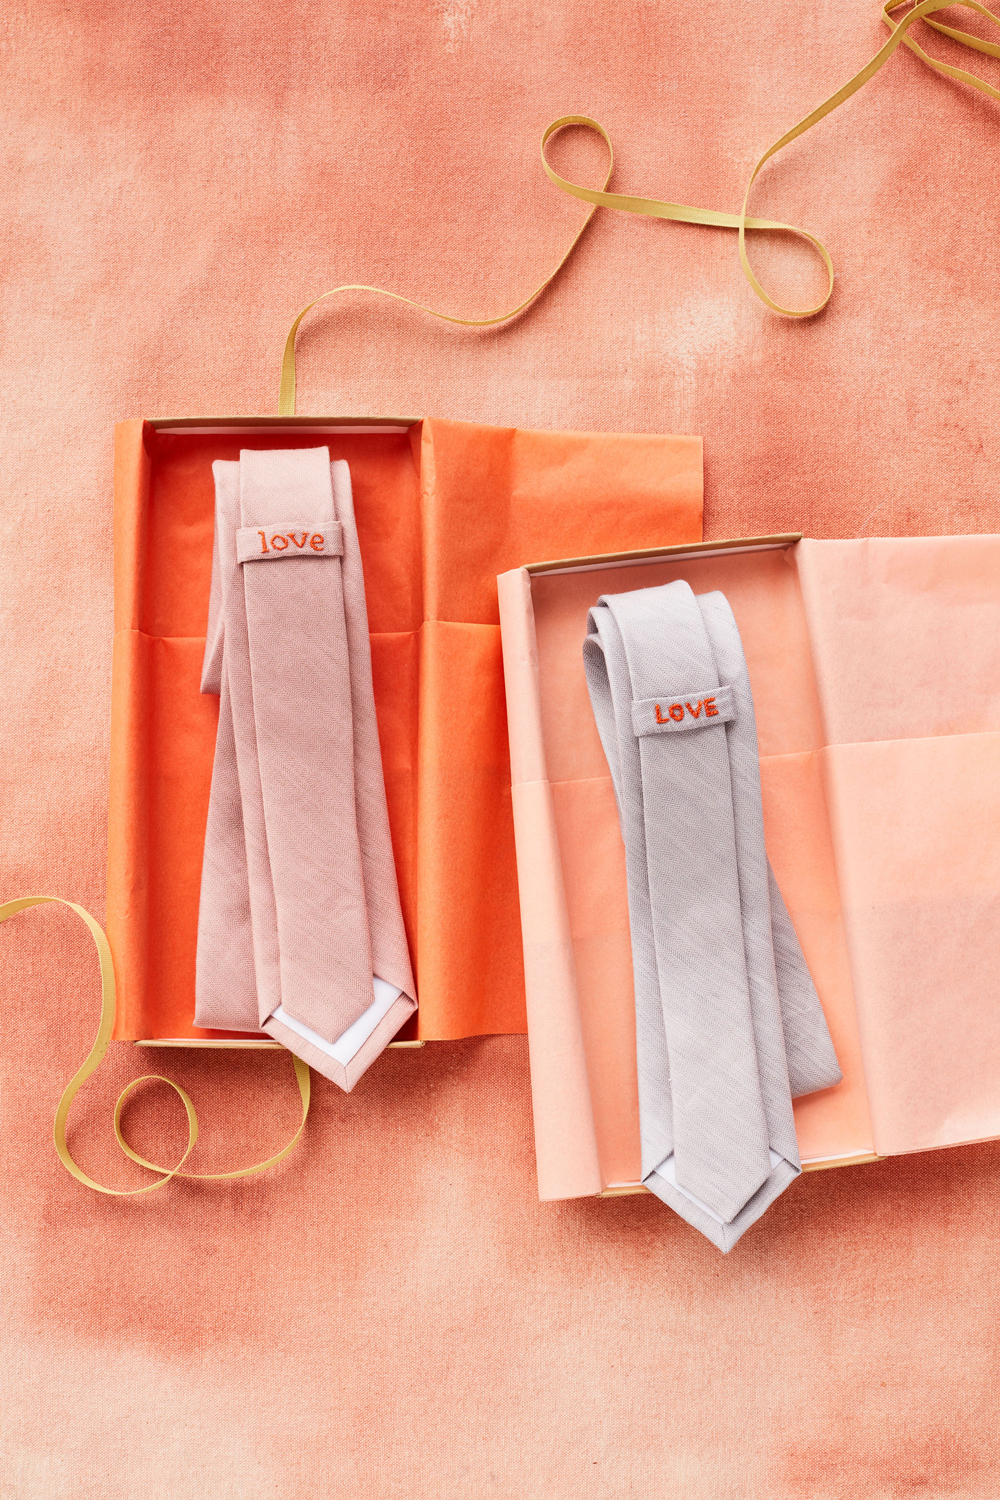 two neckties in orange boxes with love embroidered on them